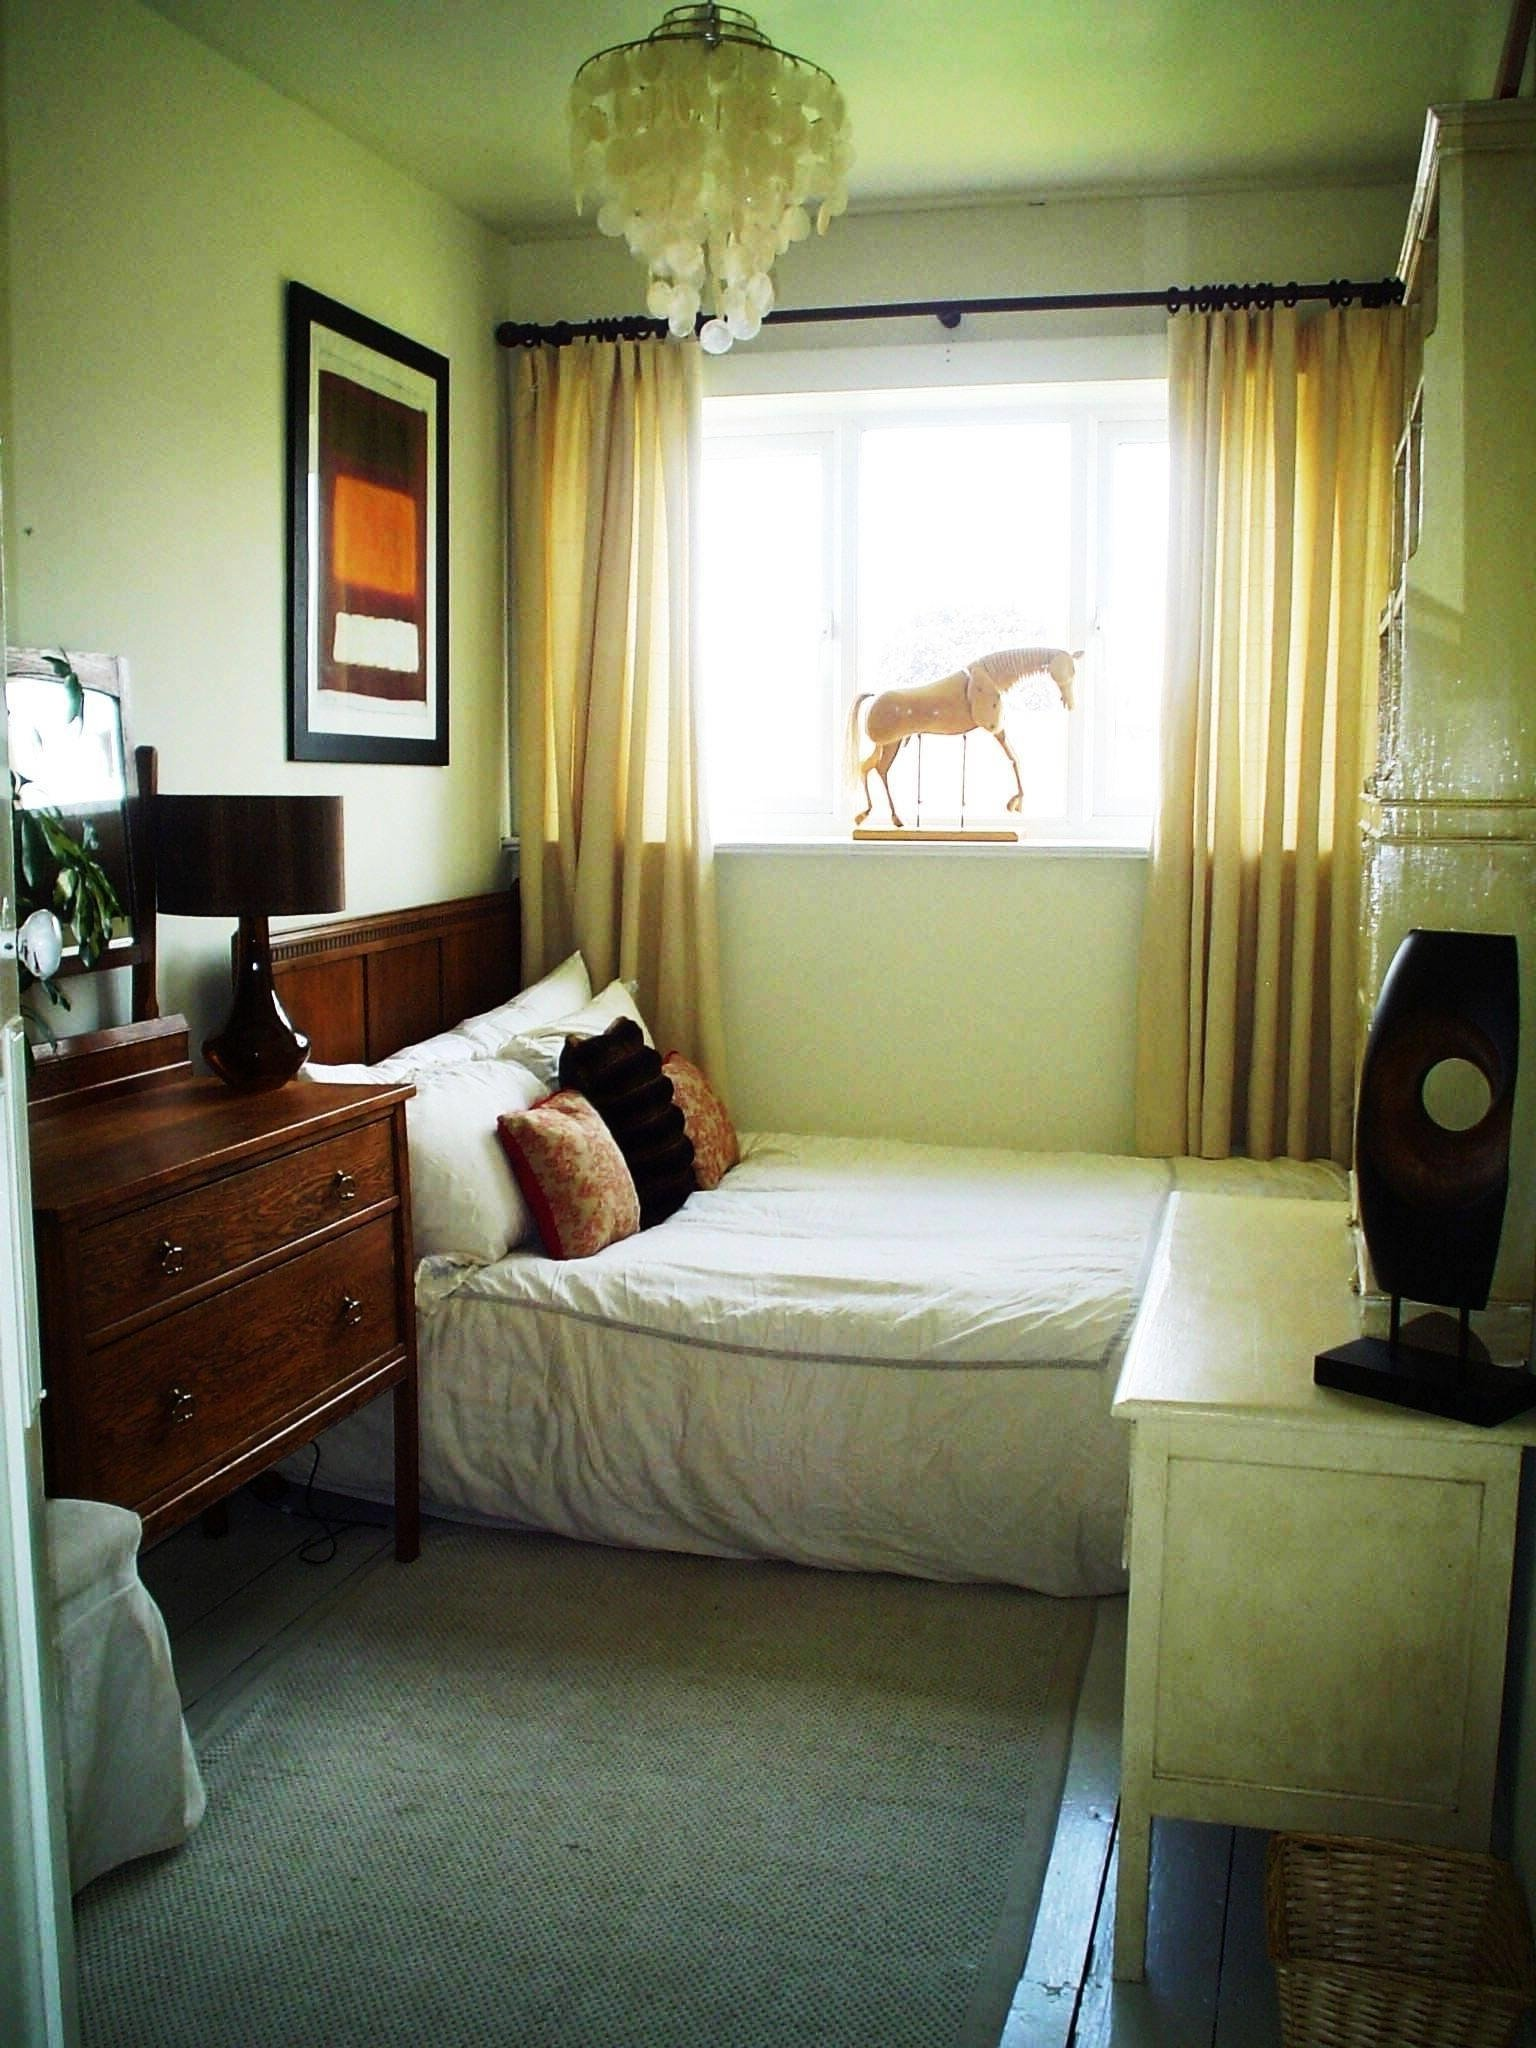 10 Beautiful Room Ideas For Small Rooms small bedroom decorating ideas amazing decoration room decor ideas 2020